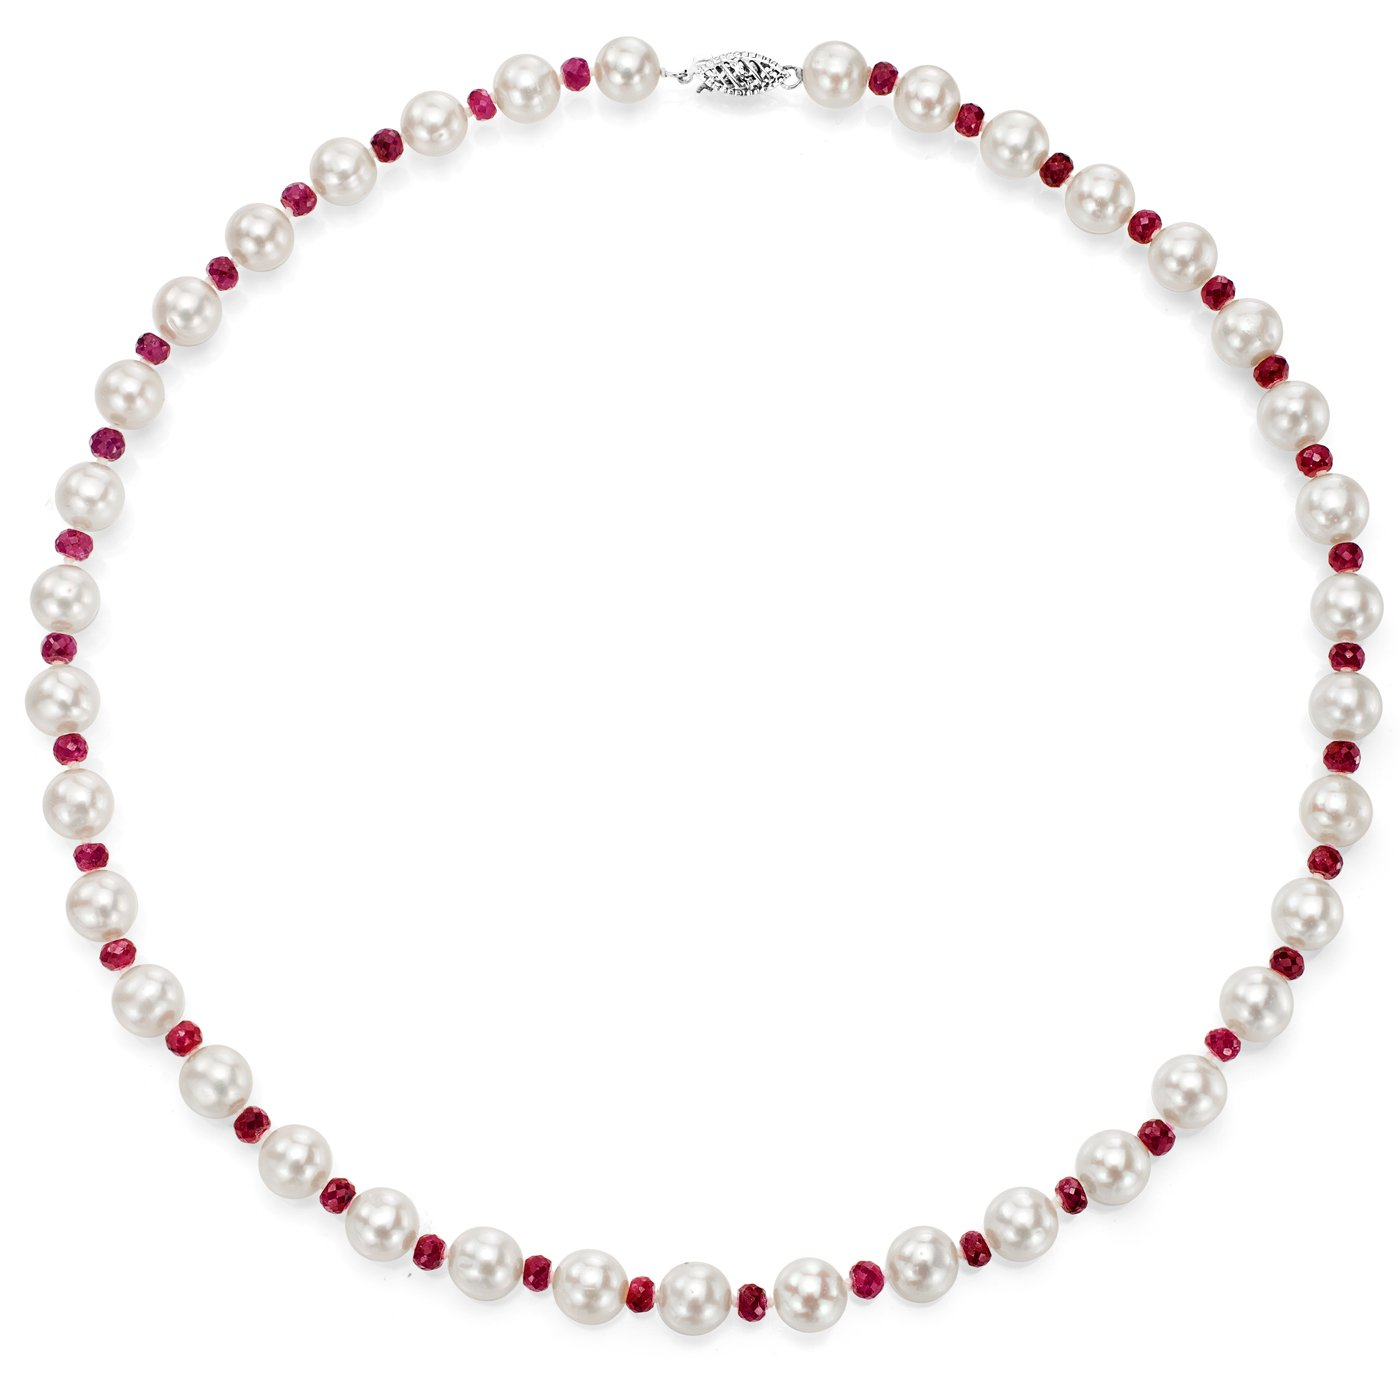 14k White Gold 8-8.5mm White Freshwater Cultured Pearl and 4-4.5mm Simulated Red Ruby Necklace, 18''